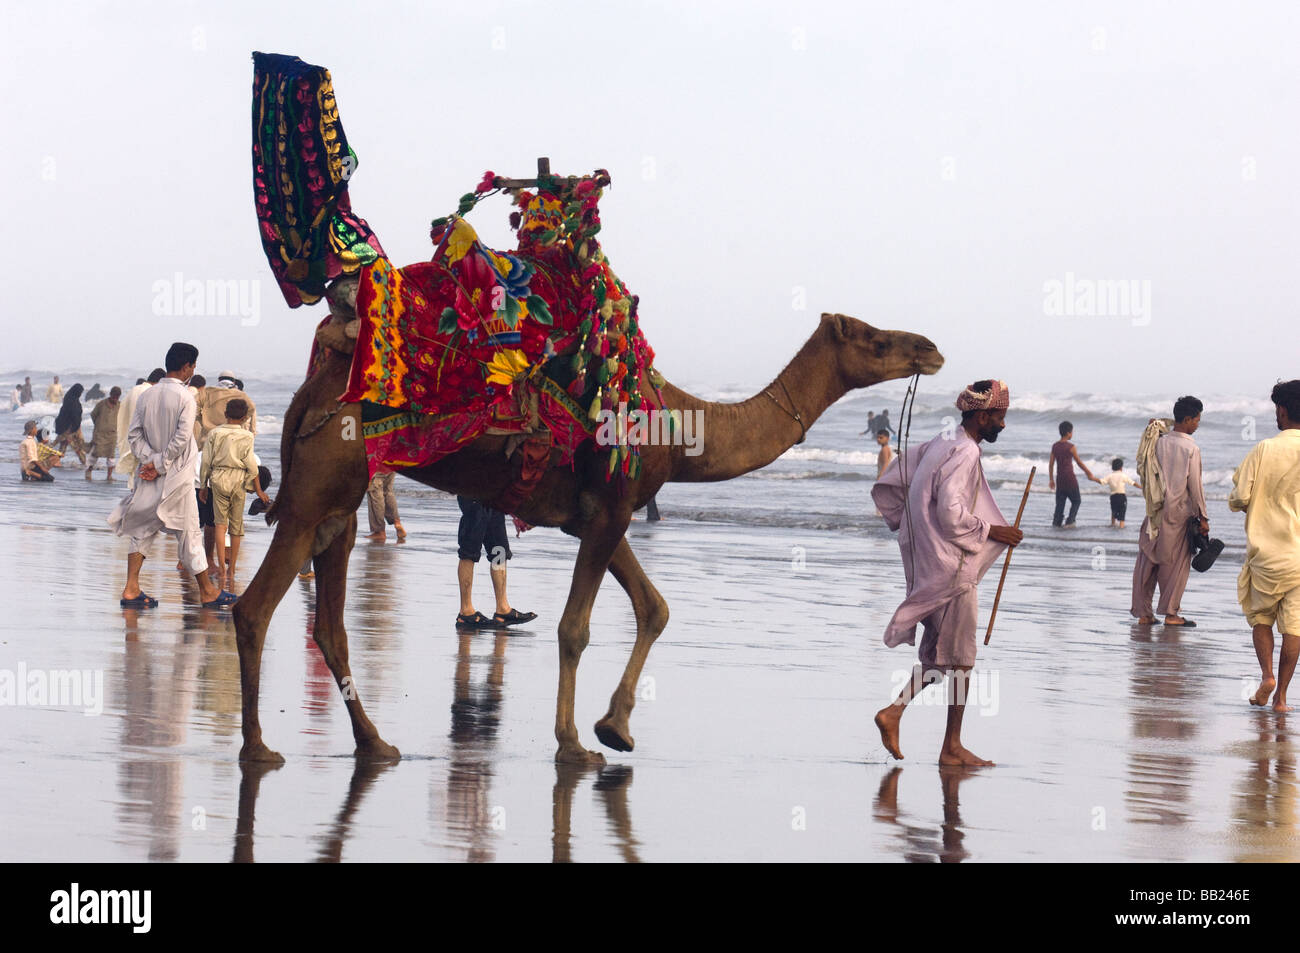 Pakistani s enjoying the camels and the sea on Clifton beach Karachi Pakistan - Stock Image